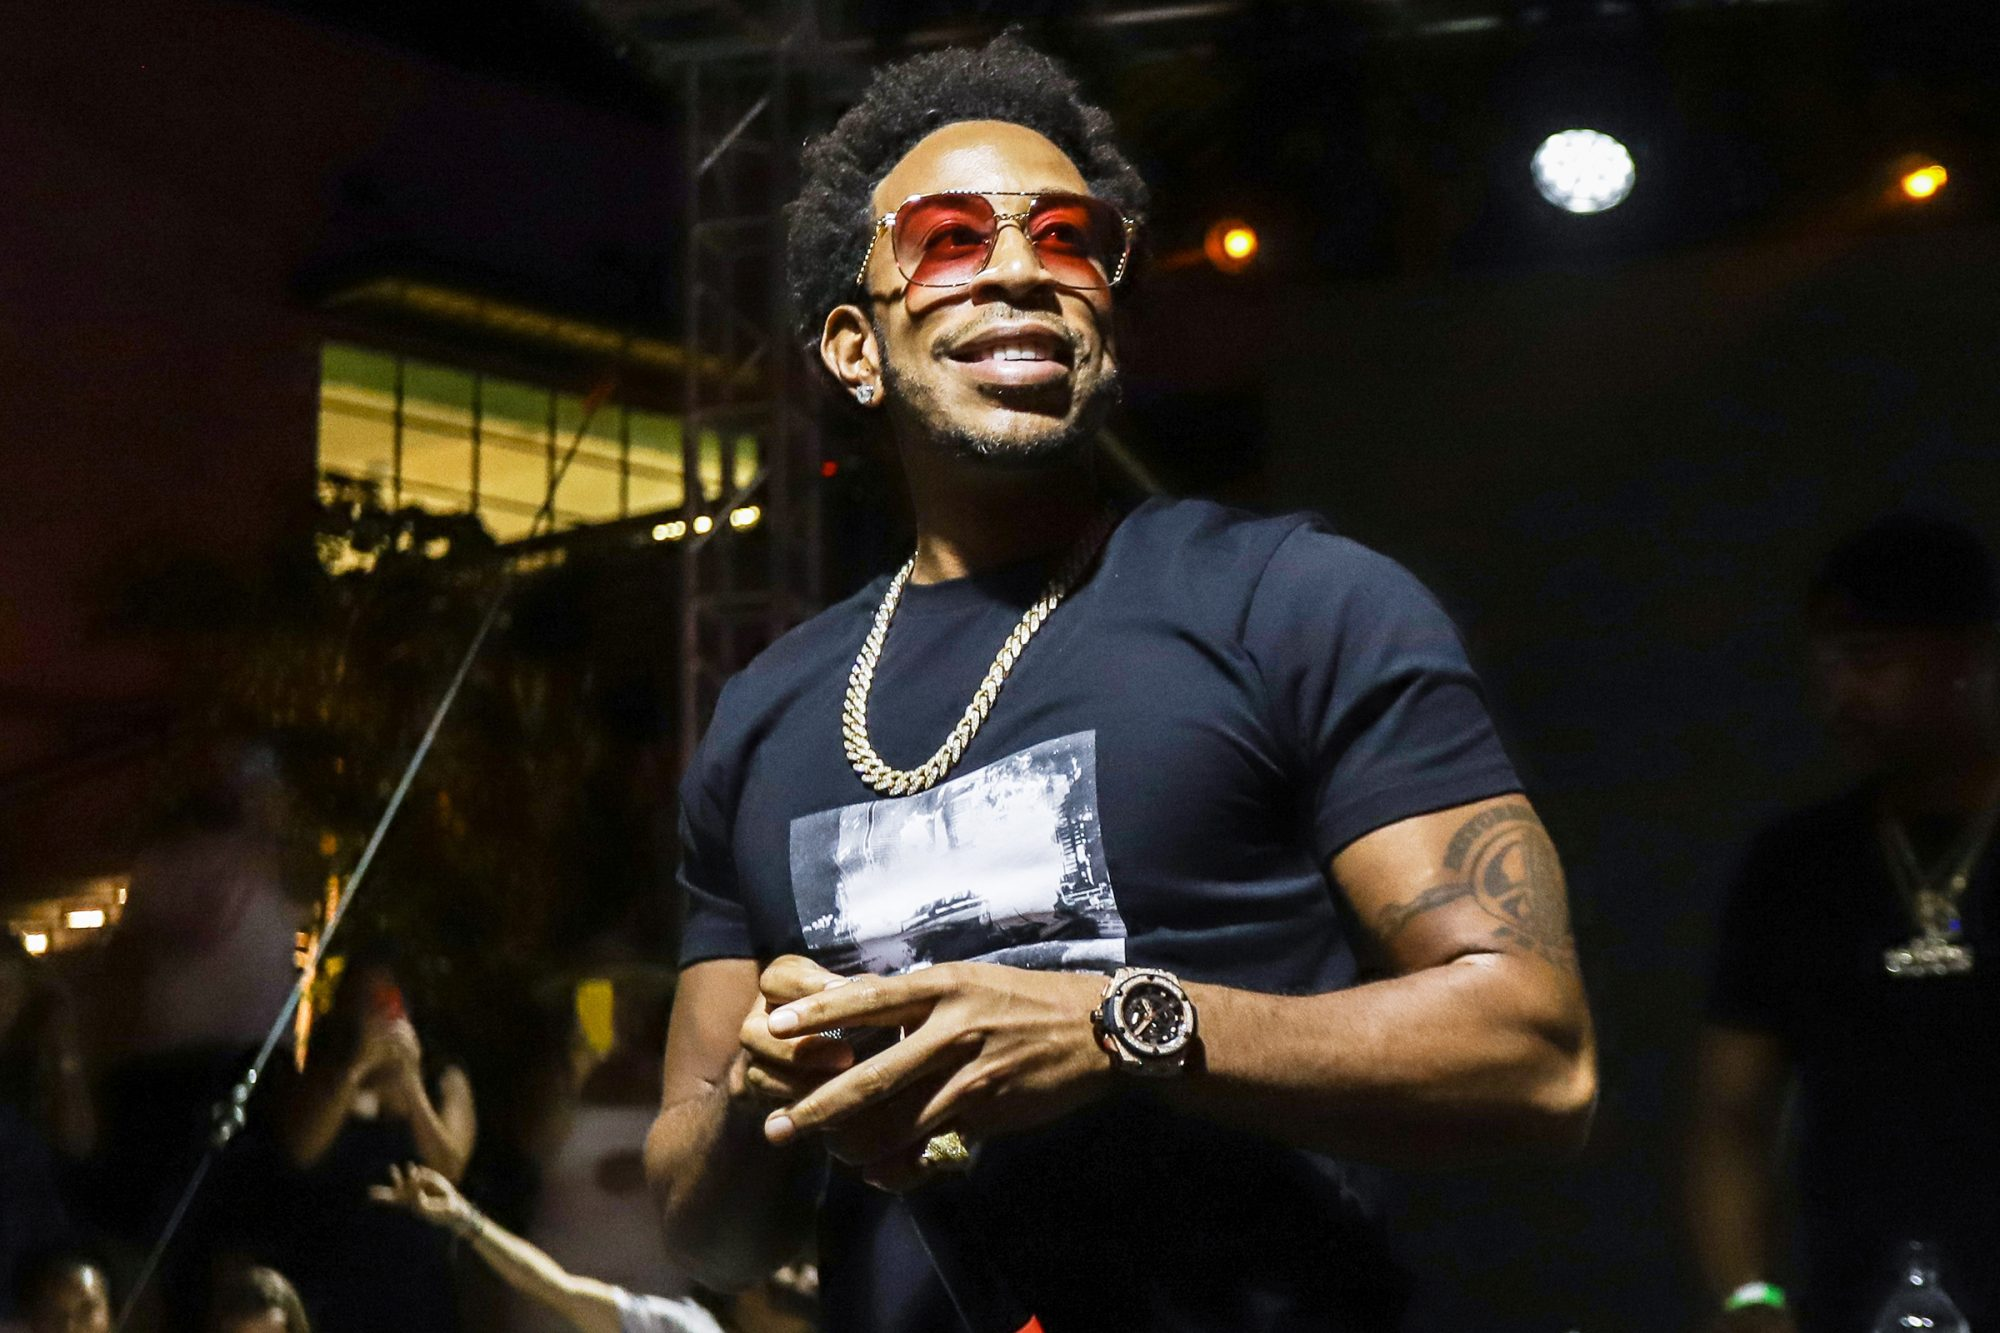 Ludacris performs at The Oasis Opening Event on May 02, 2021 in Miami, Florida